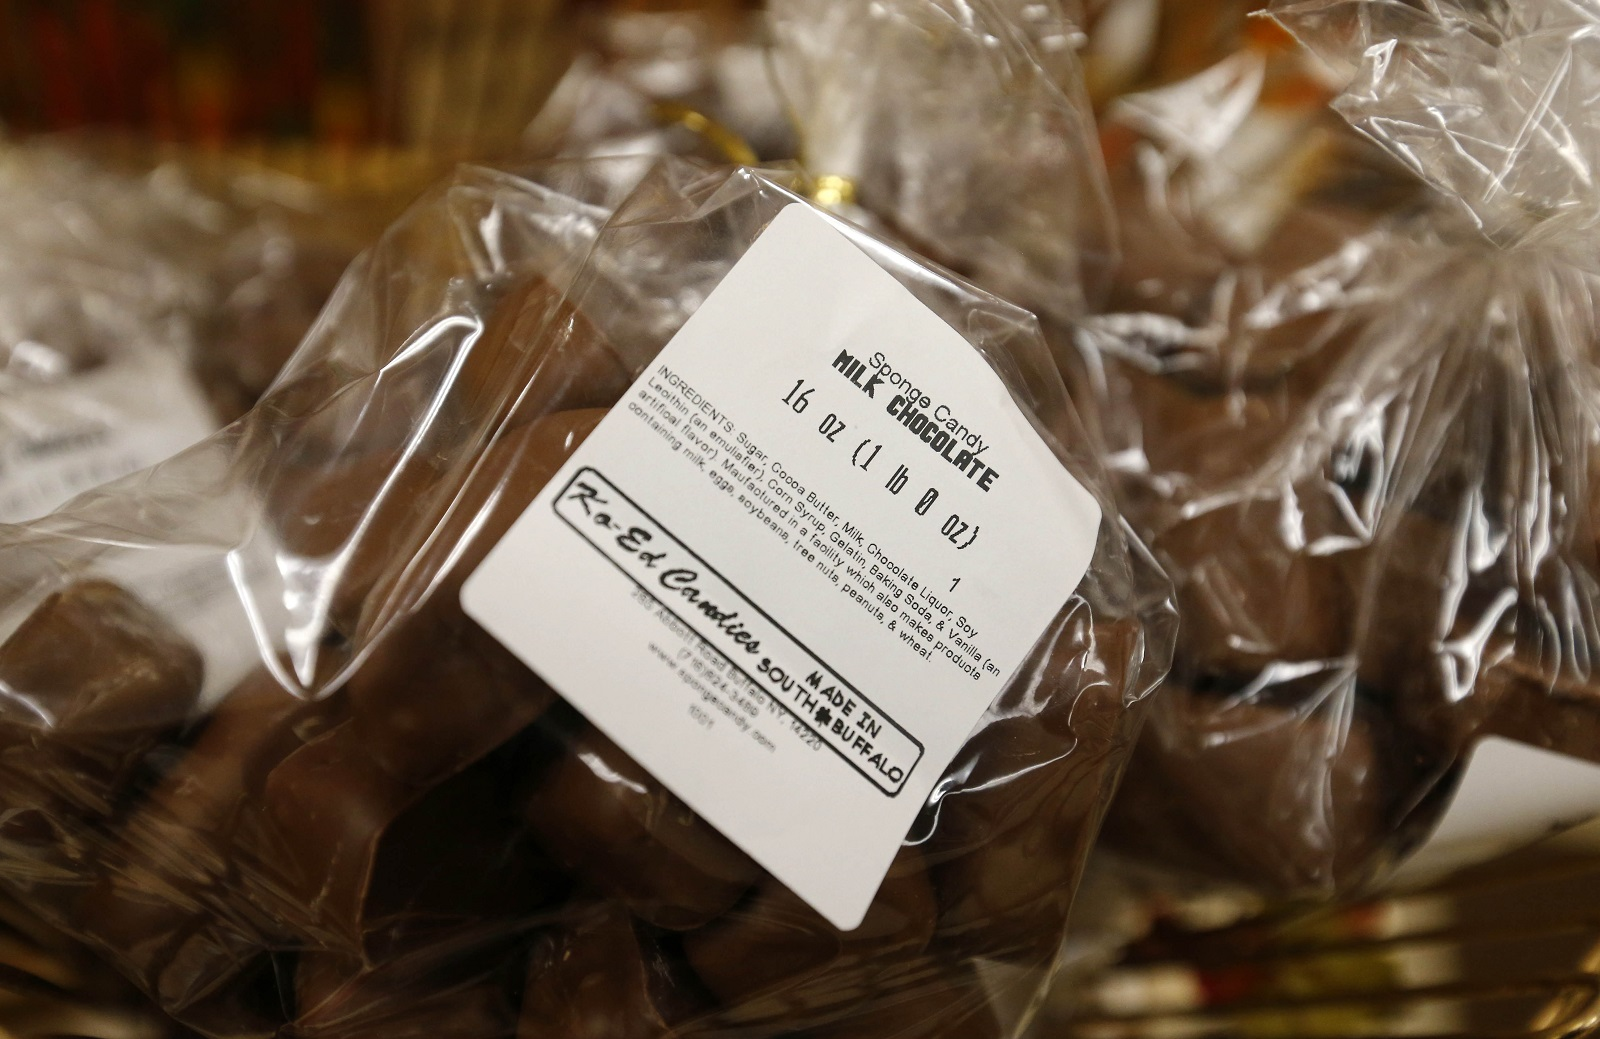 A bag of sponge candy at Ko-Ed Candies in South Buffalo. (Mark Mulville/Buffalo News)